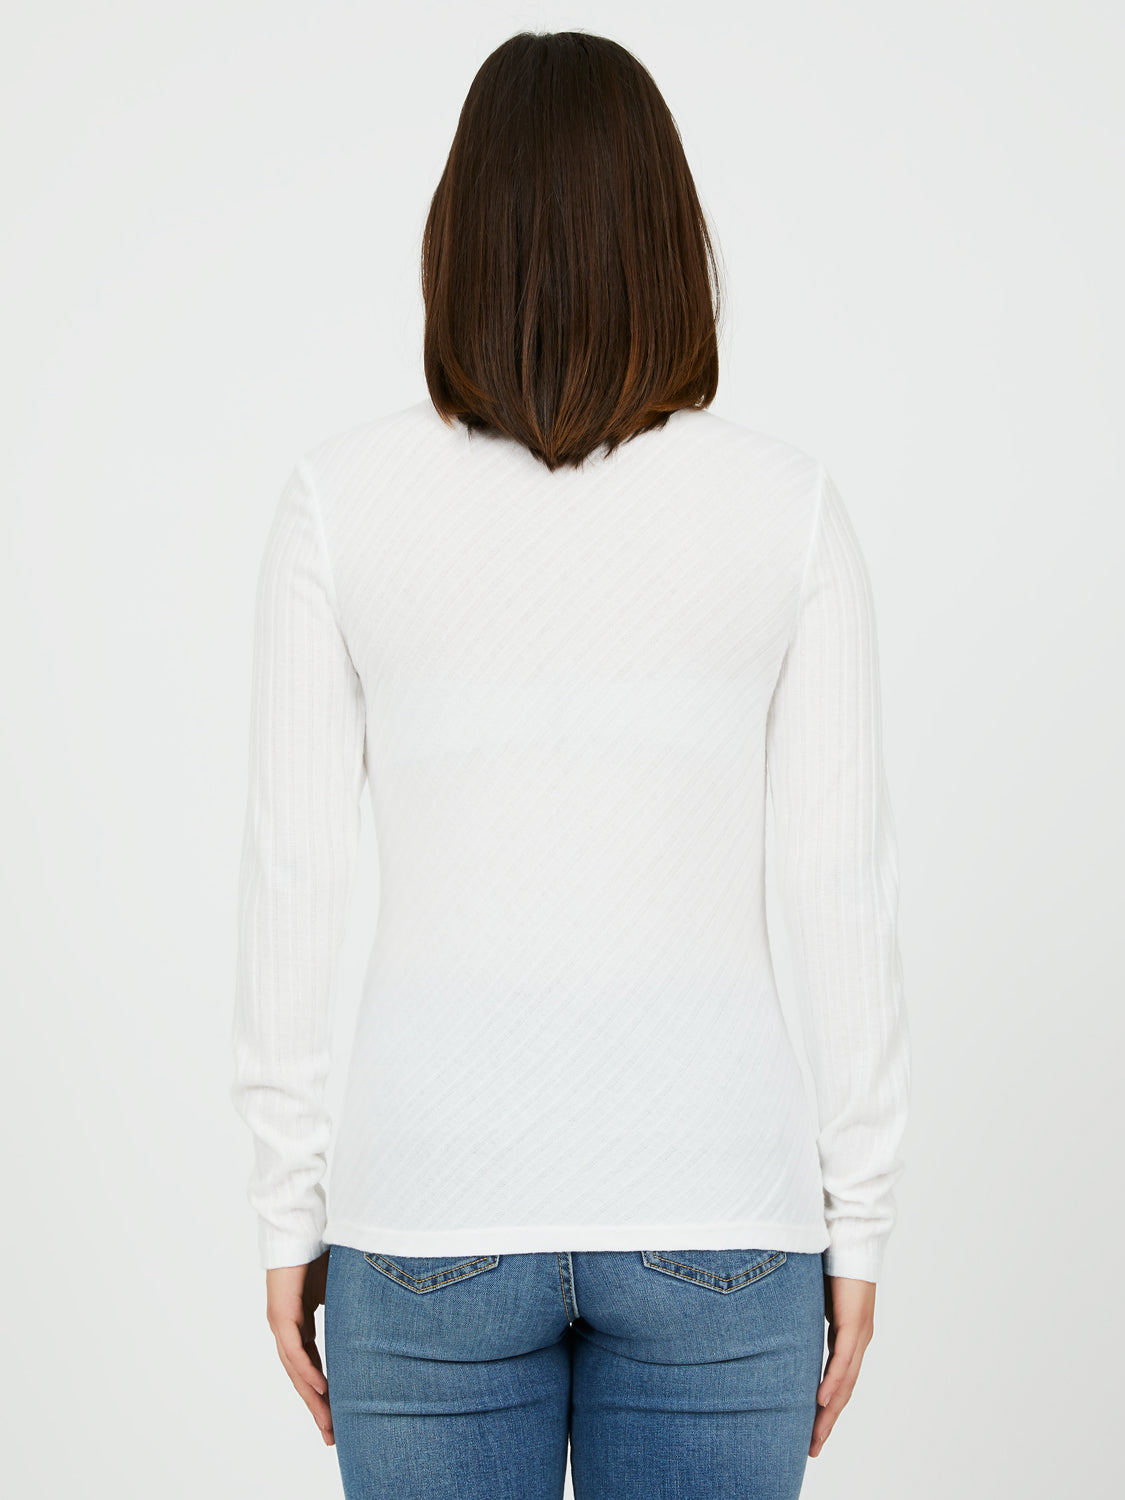 Rib Knit Mock Neck Top